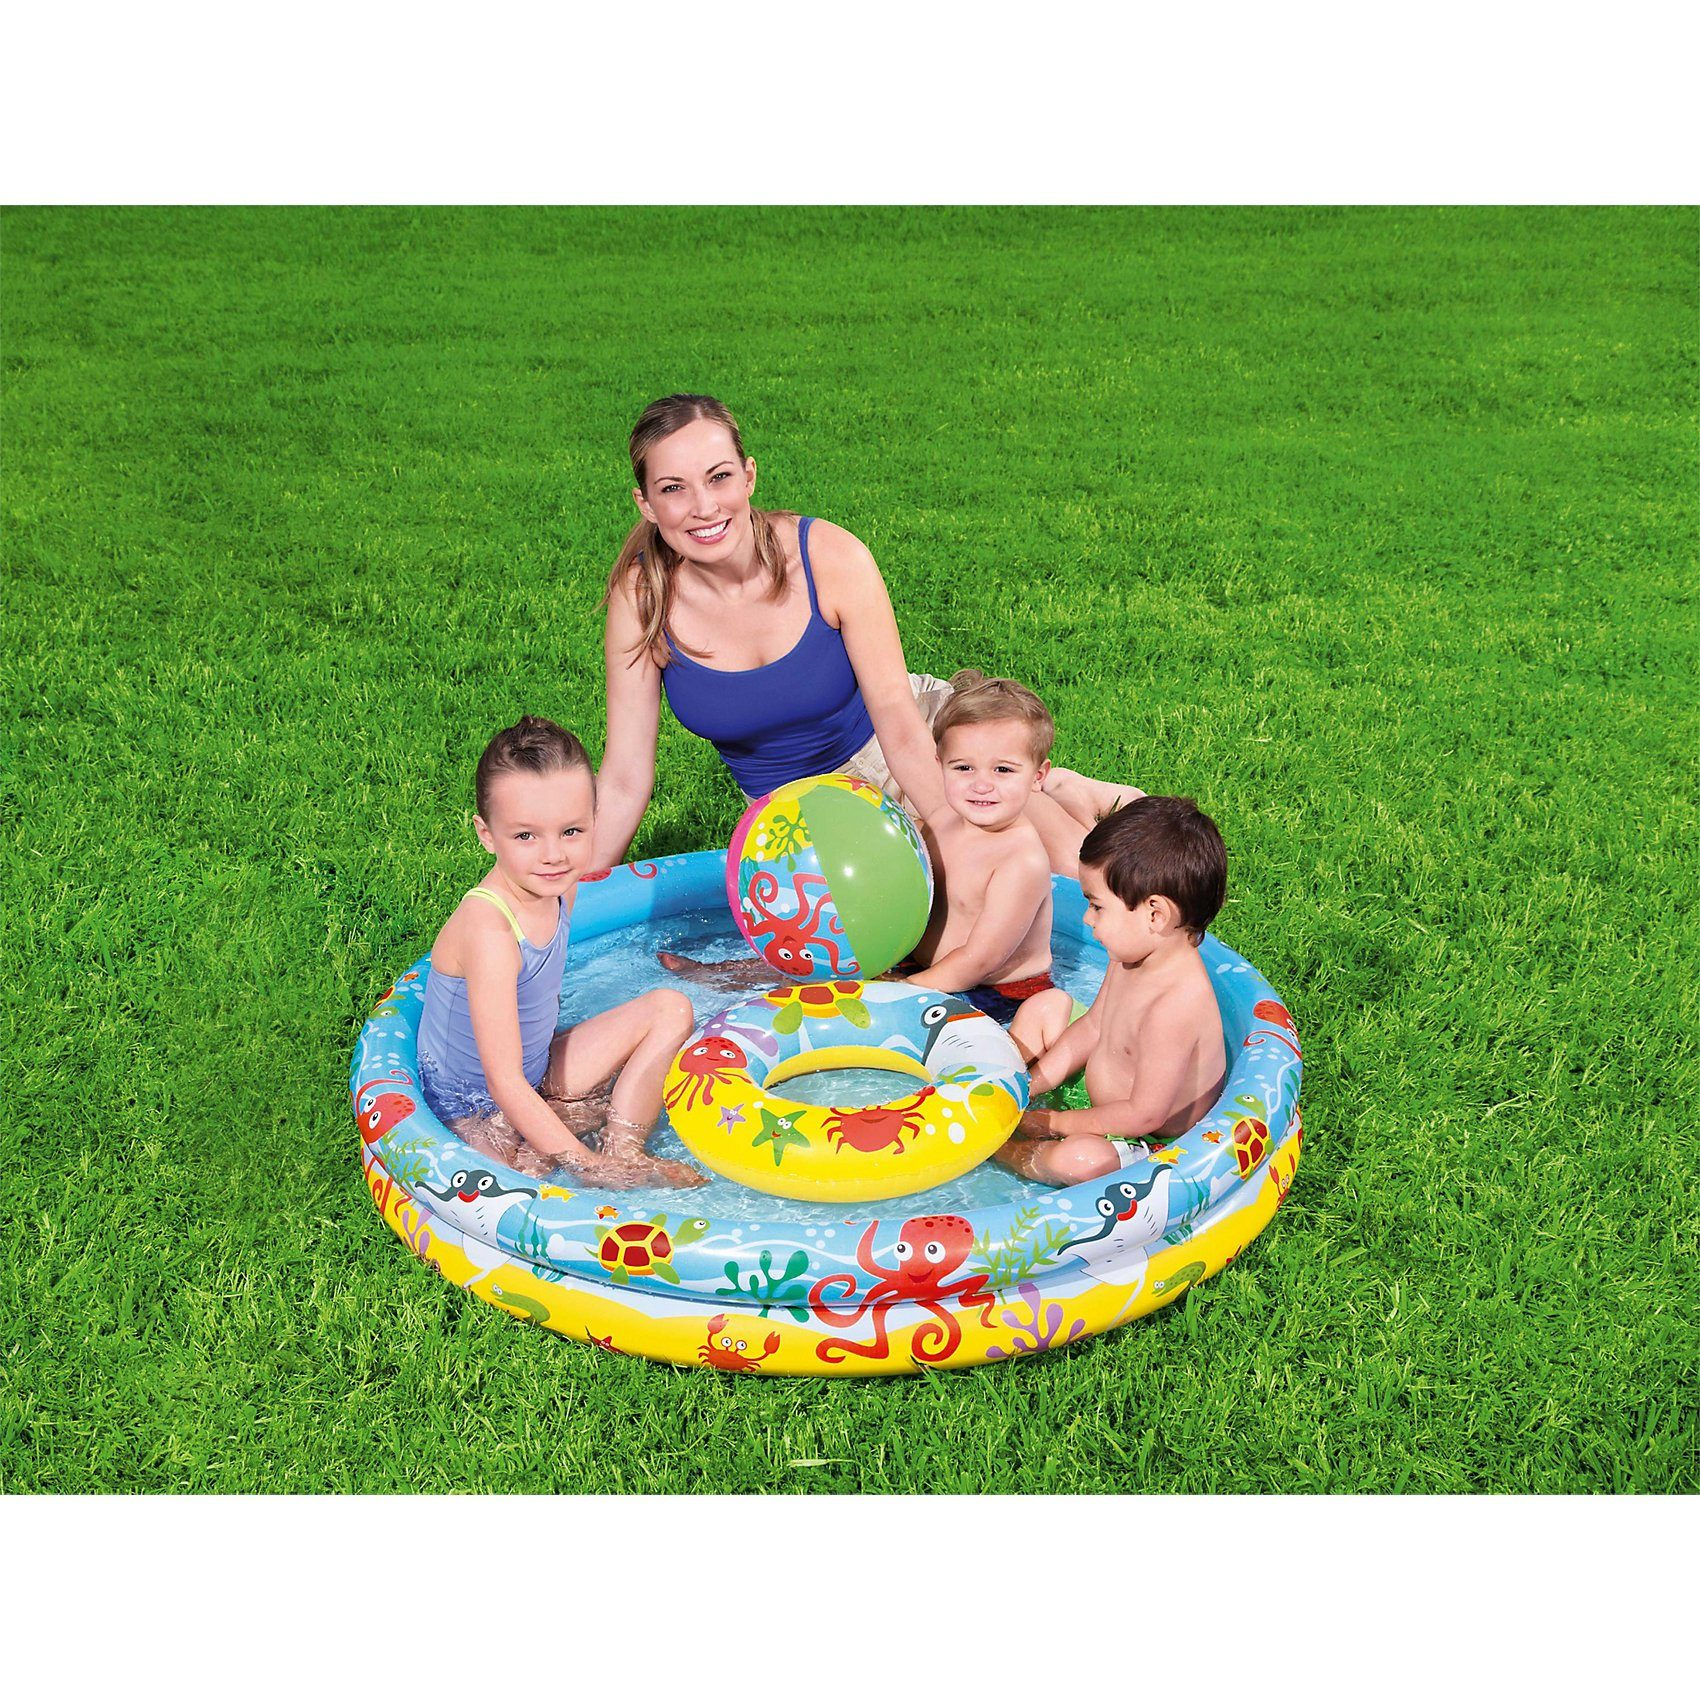 Bestway Play Pool Set 3-teilig 122x20 cm, Planschbecken Set